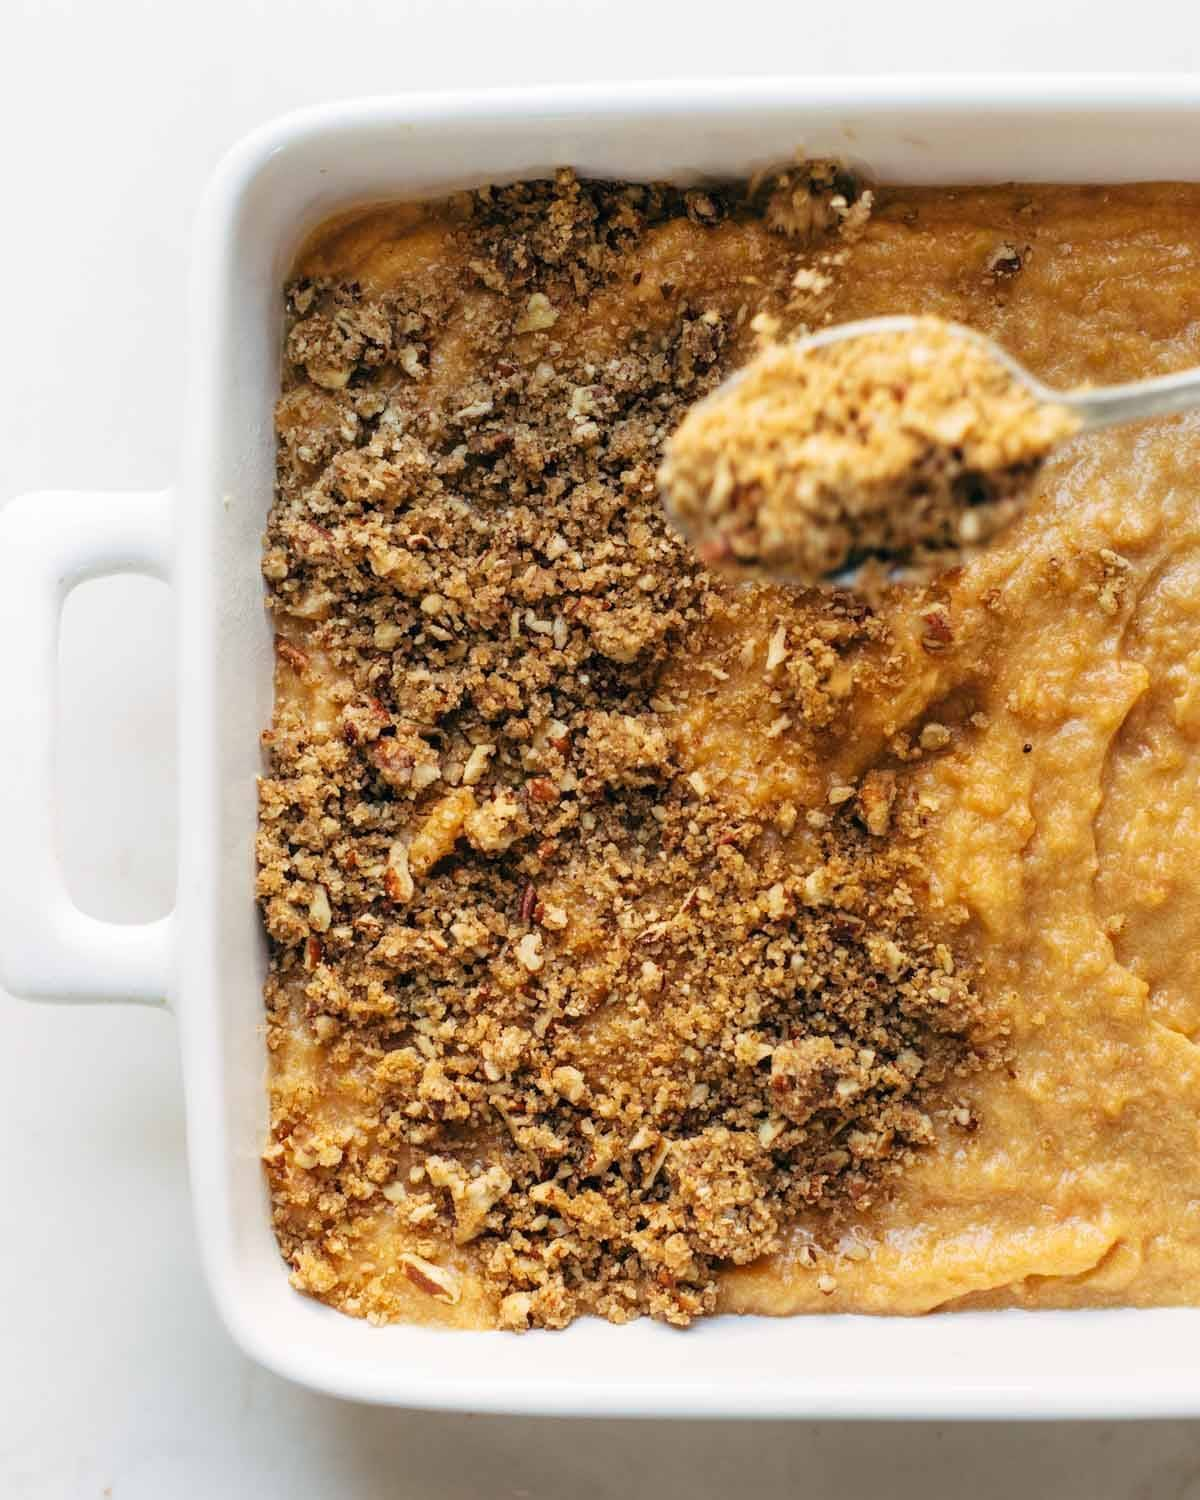 Sweet Potato Casserole with a crunchy brown sugar topping in a dish with a spoon.